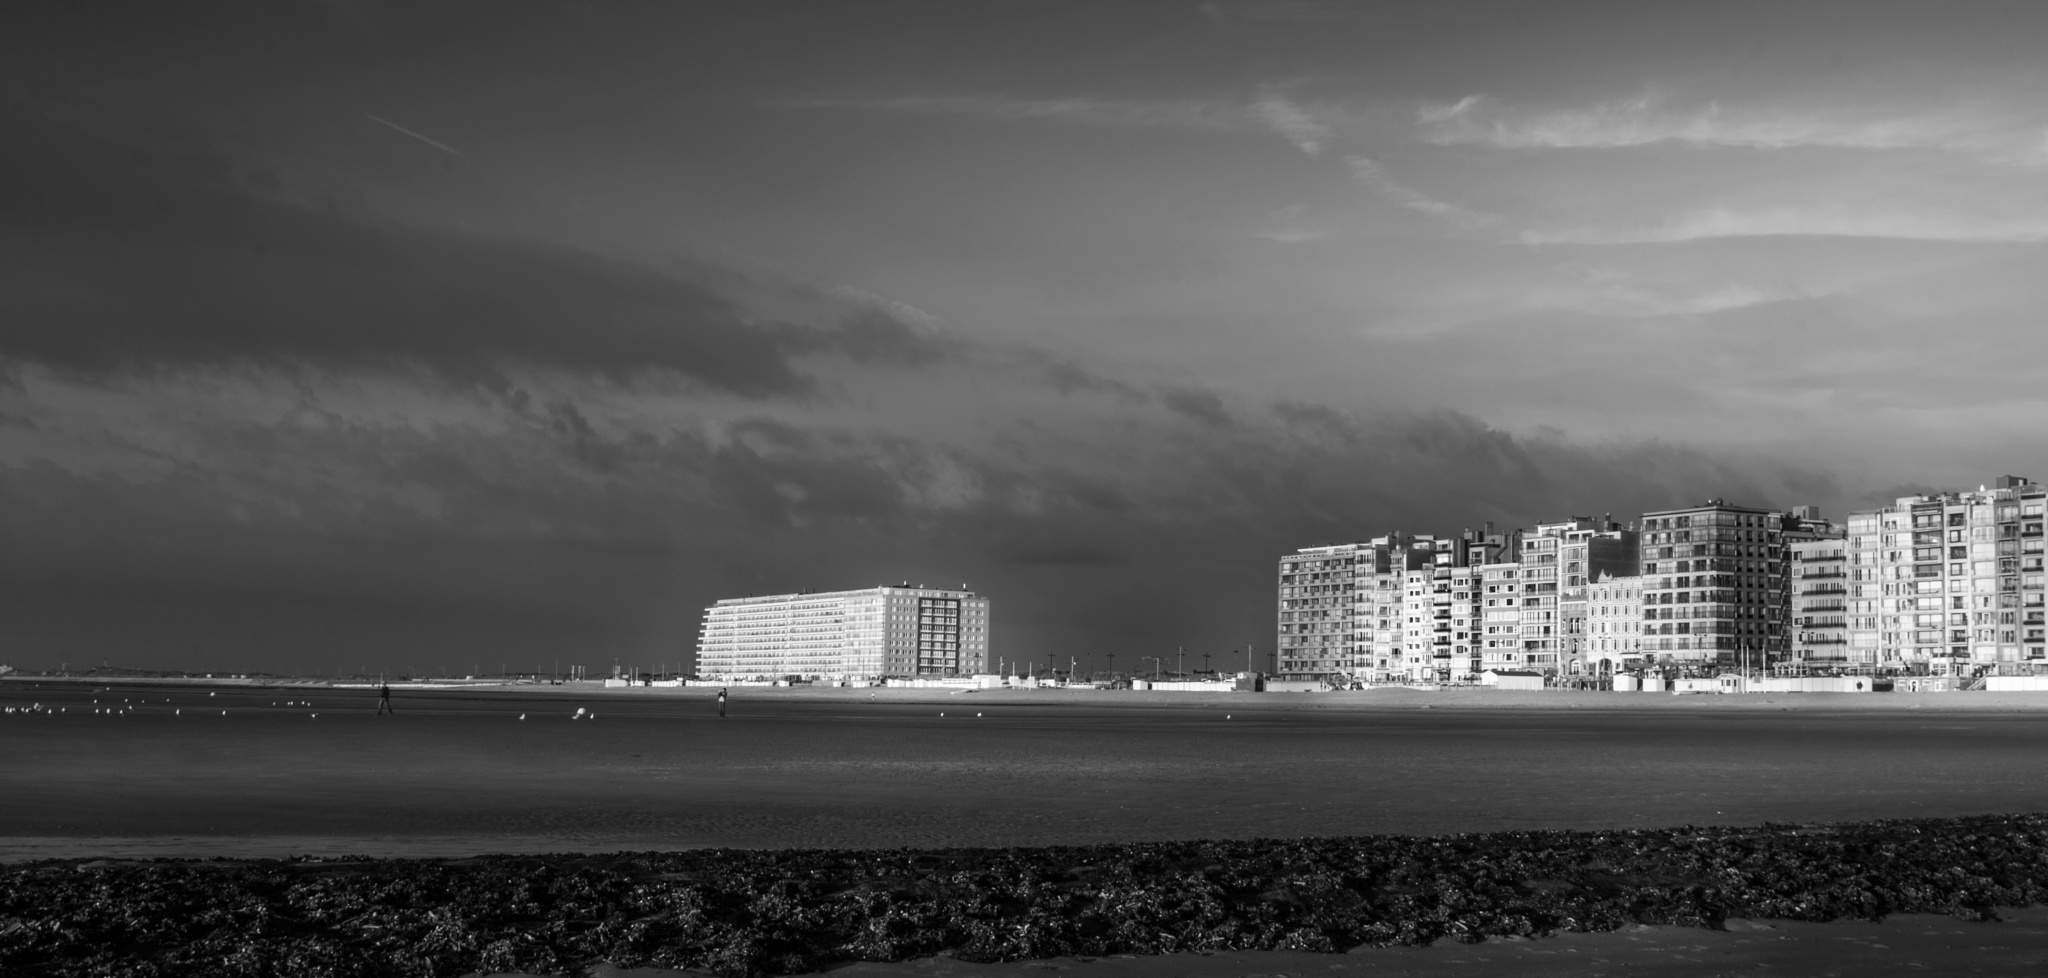 Evening falls over Nieuwpoort by ronin18